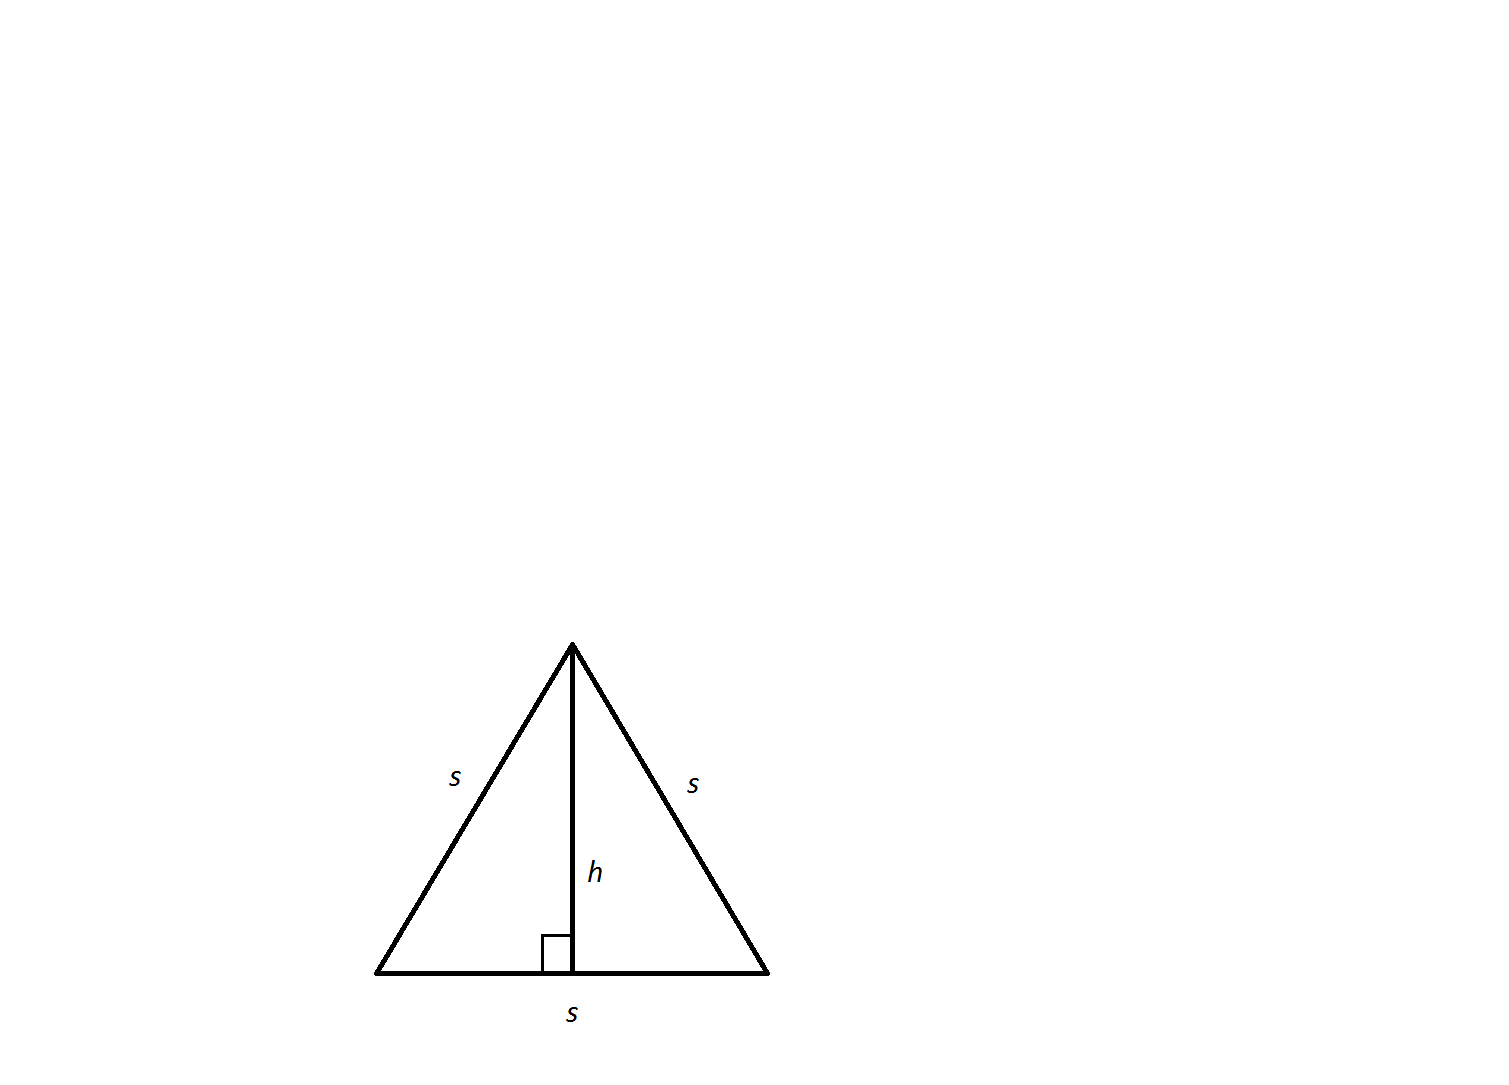 Example Question #4 : How To Find The Perimeter Of An Equilateral Triangle